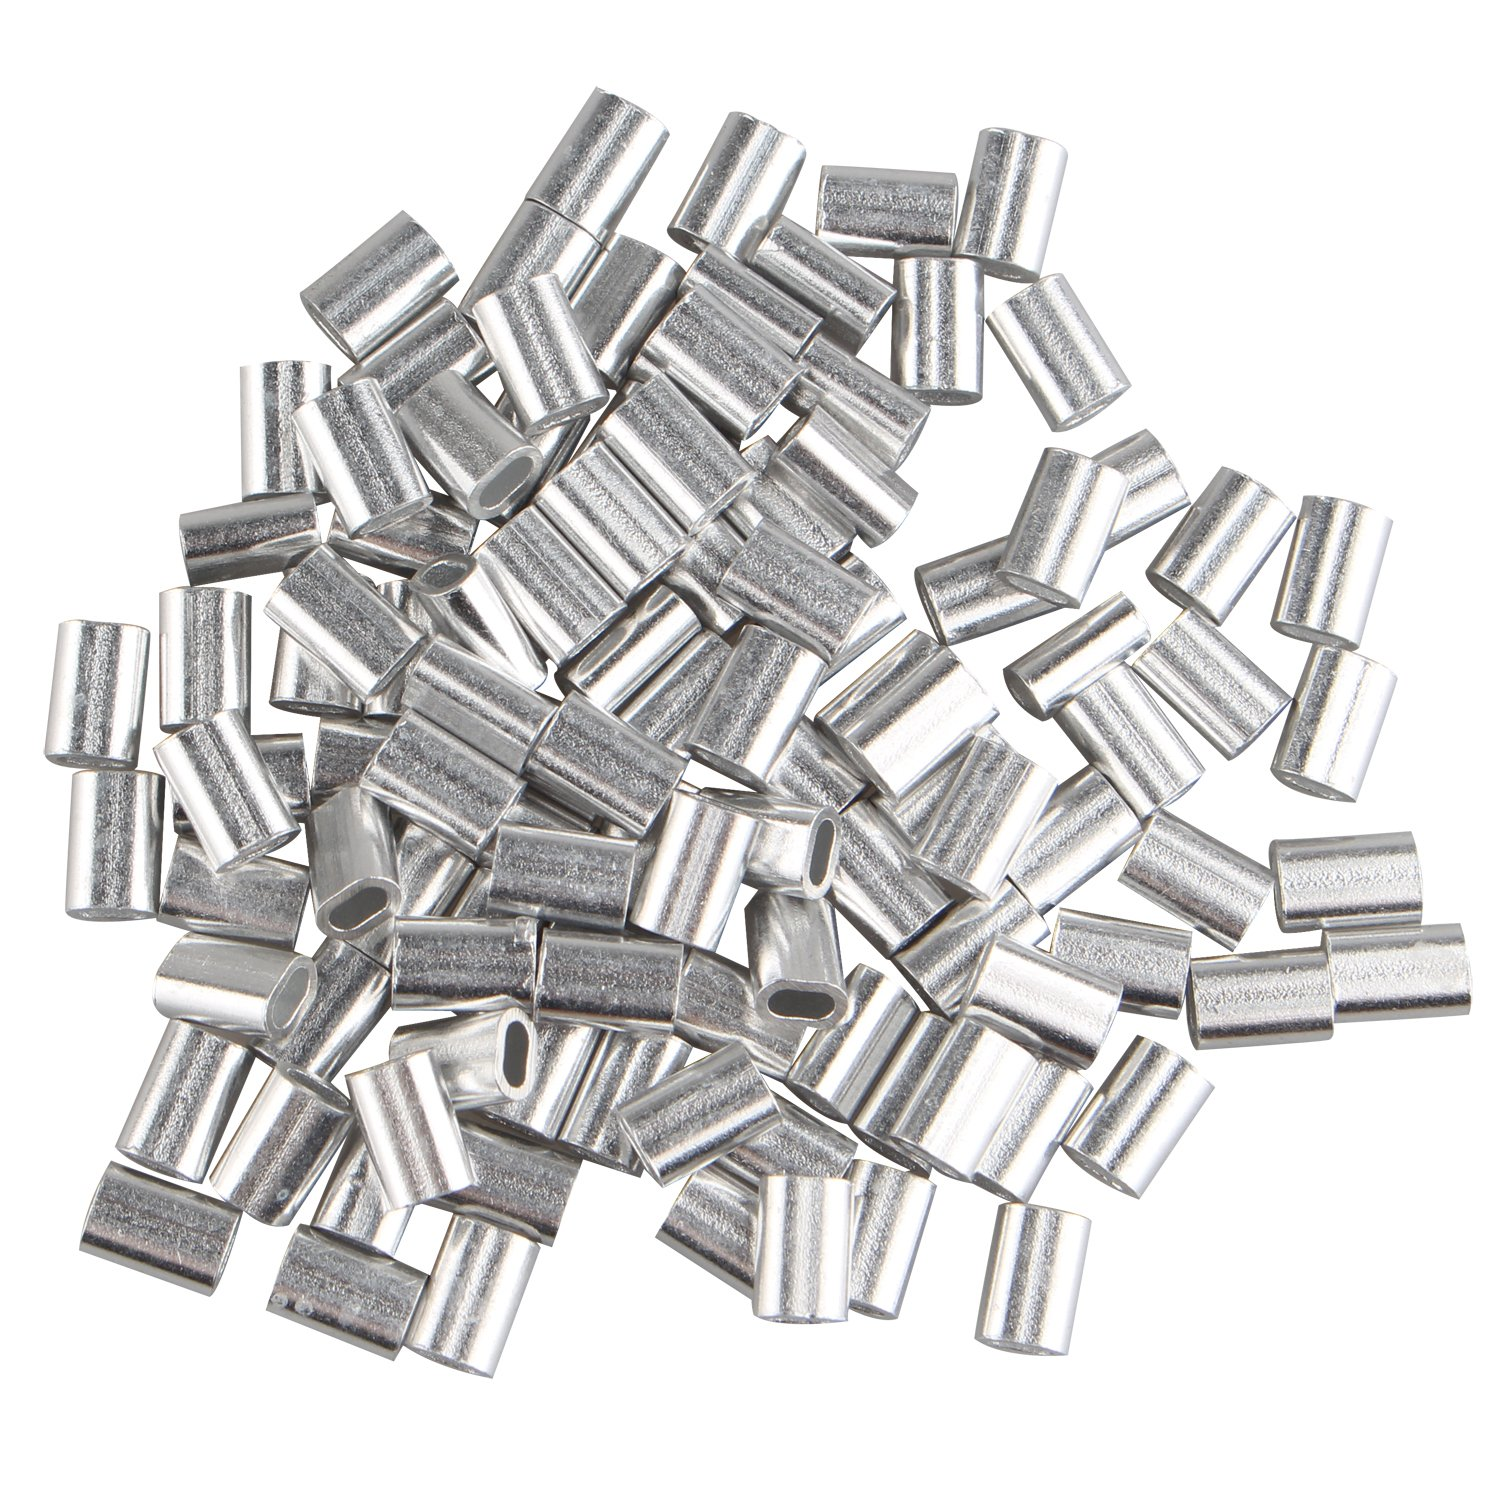 100 pcs Aluminum Crimping Loop Sleeve Clips Oval Shaped for 1.5mm Cable Wire Rope Silver Tone FUSD